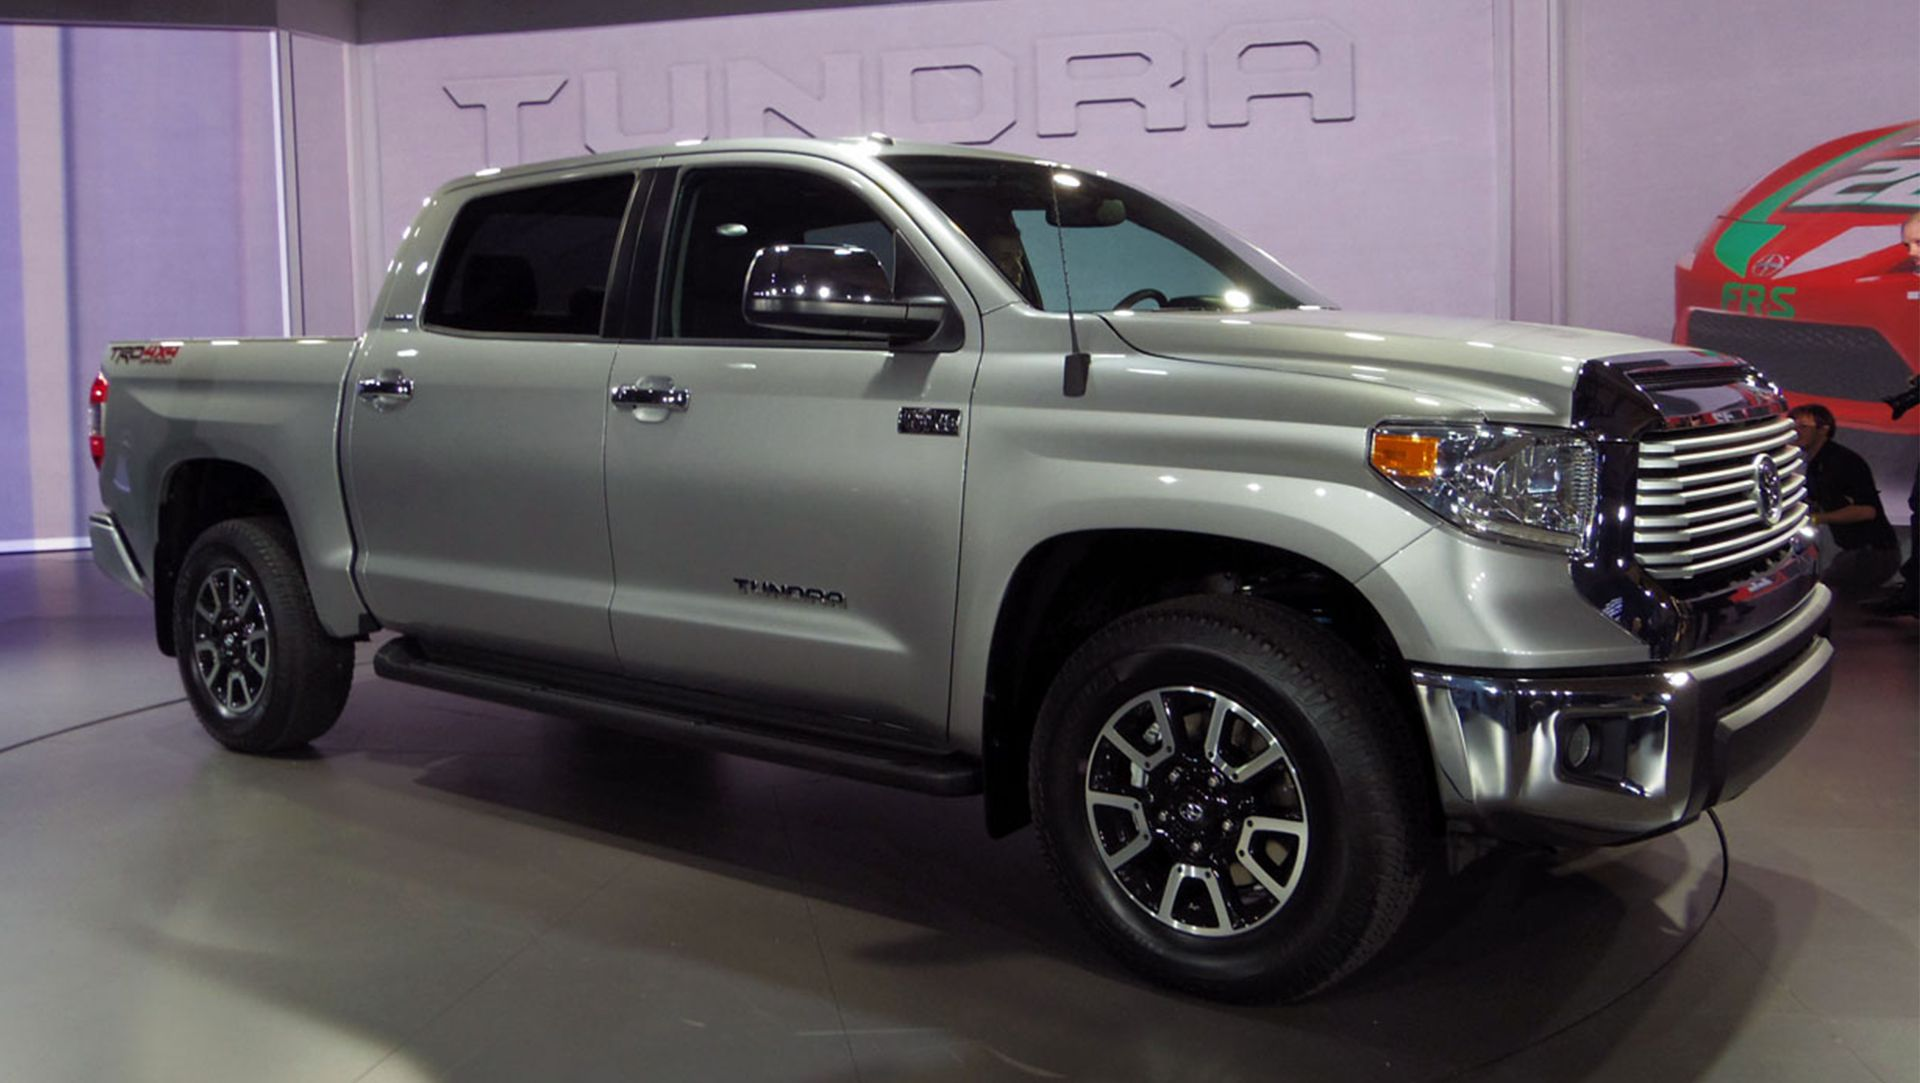 High Quality 2013 Chicago : 2014 Toyota Tundra